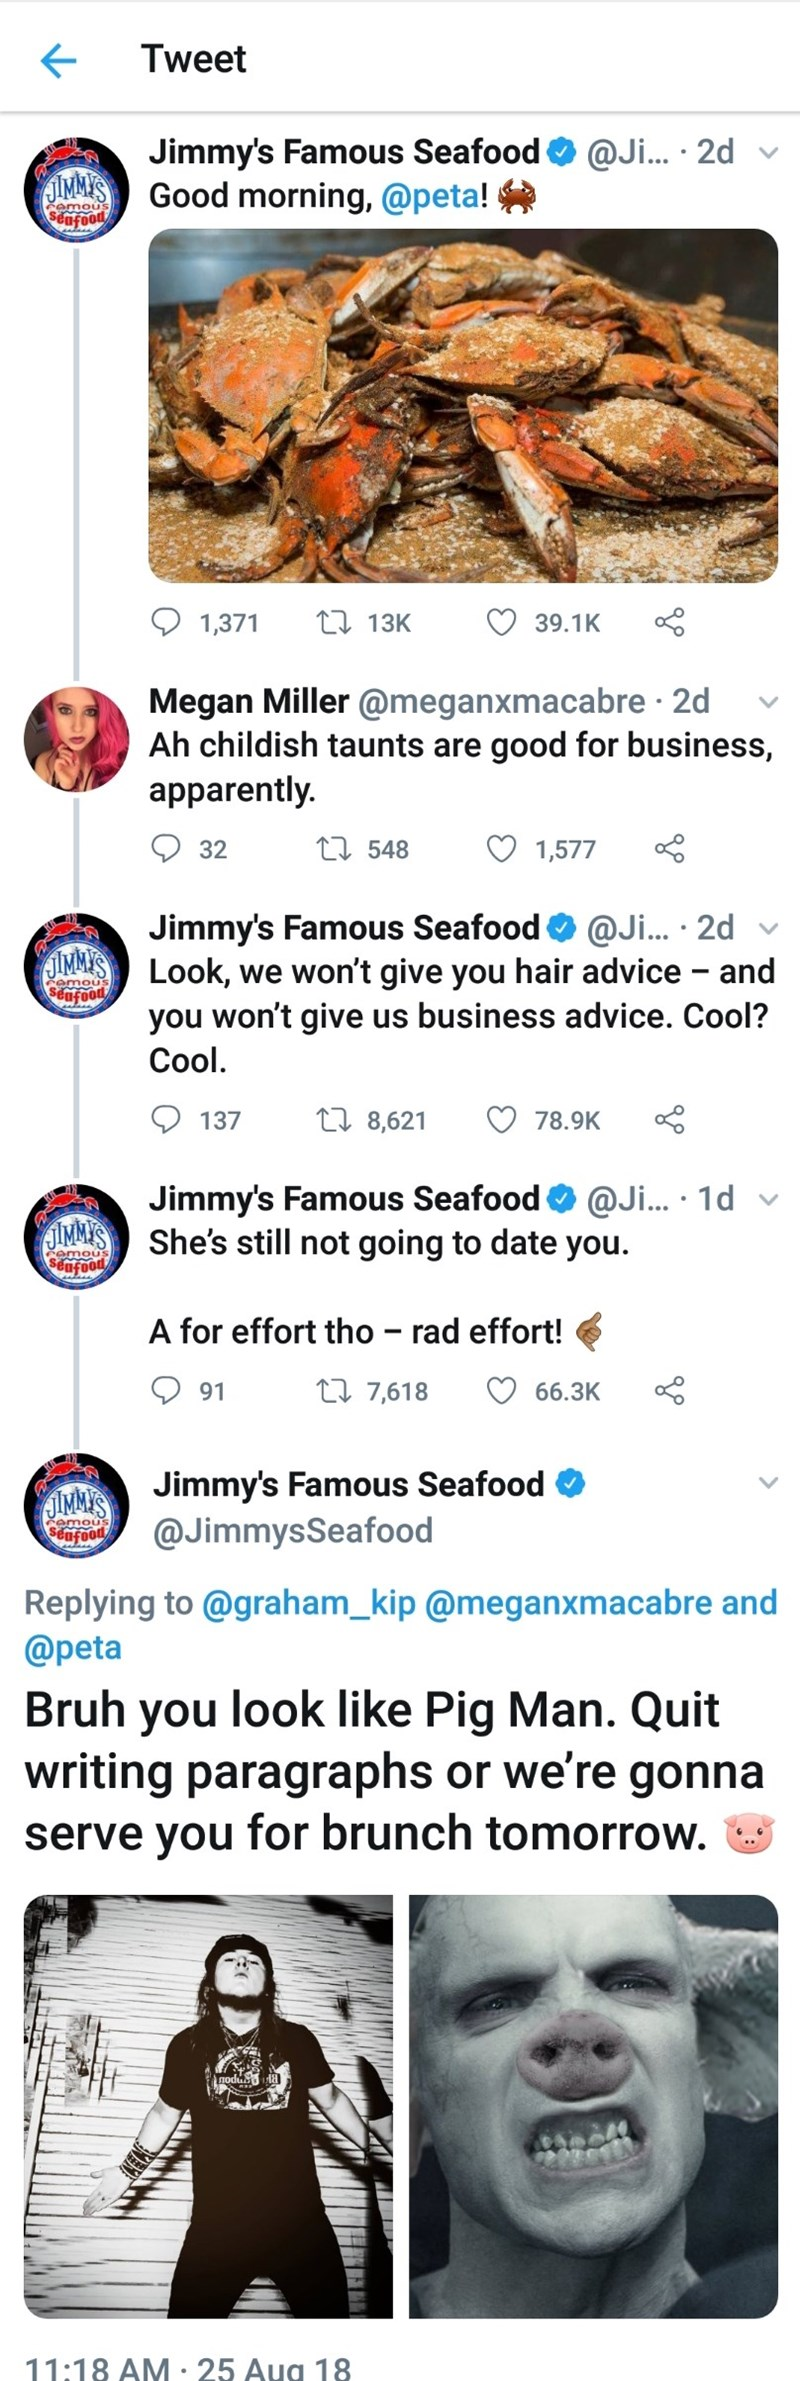 Text - Tweet Jimmy's Famous Seafood JIMMY'SGood morning, @peta! @Ji... 2d emous sncood LI 13K 1,371 39.1K Megan Miller @meganxmacabre 2d Ah childish taunts are good for business, apparently. L548 32 1,577 Jimmy's Famous Seafood @Ji... 2d and QIMMLook, we won't give you hair advice you won't give us business advice. Cool? Seufood Cool. Li 8,621 137 78.9K @Ji... 1d Jimmy's Famous Seafood JIMMY'S She's still not going to date you. poofo A for effort tho - rad effort! t 7,618 91 66.3K Jimmy's Famous